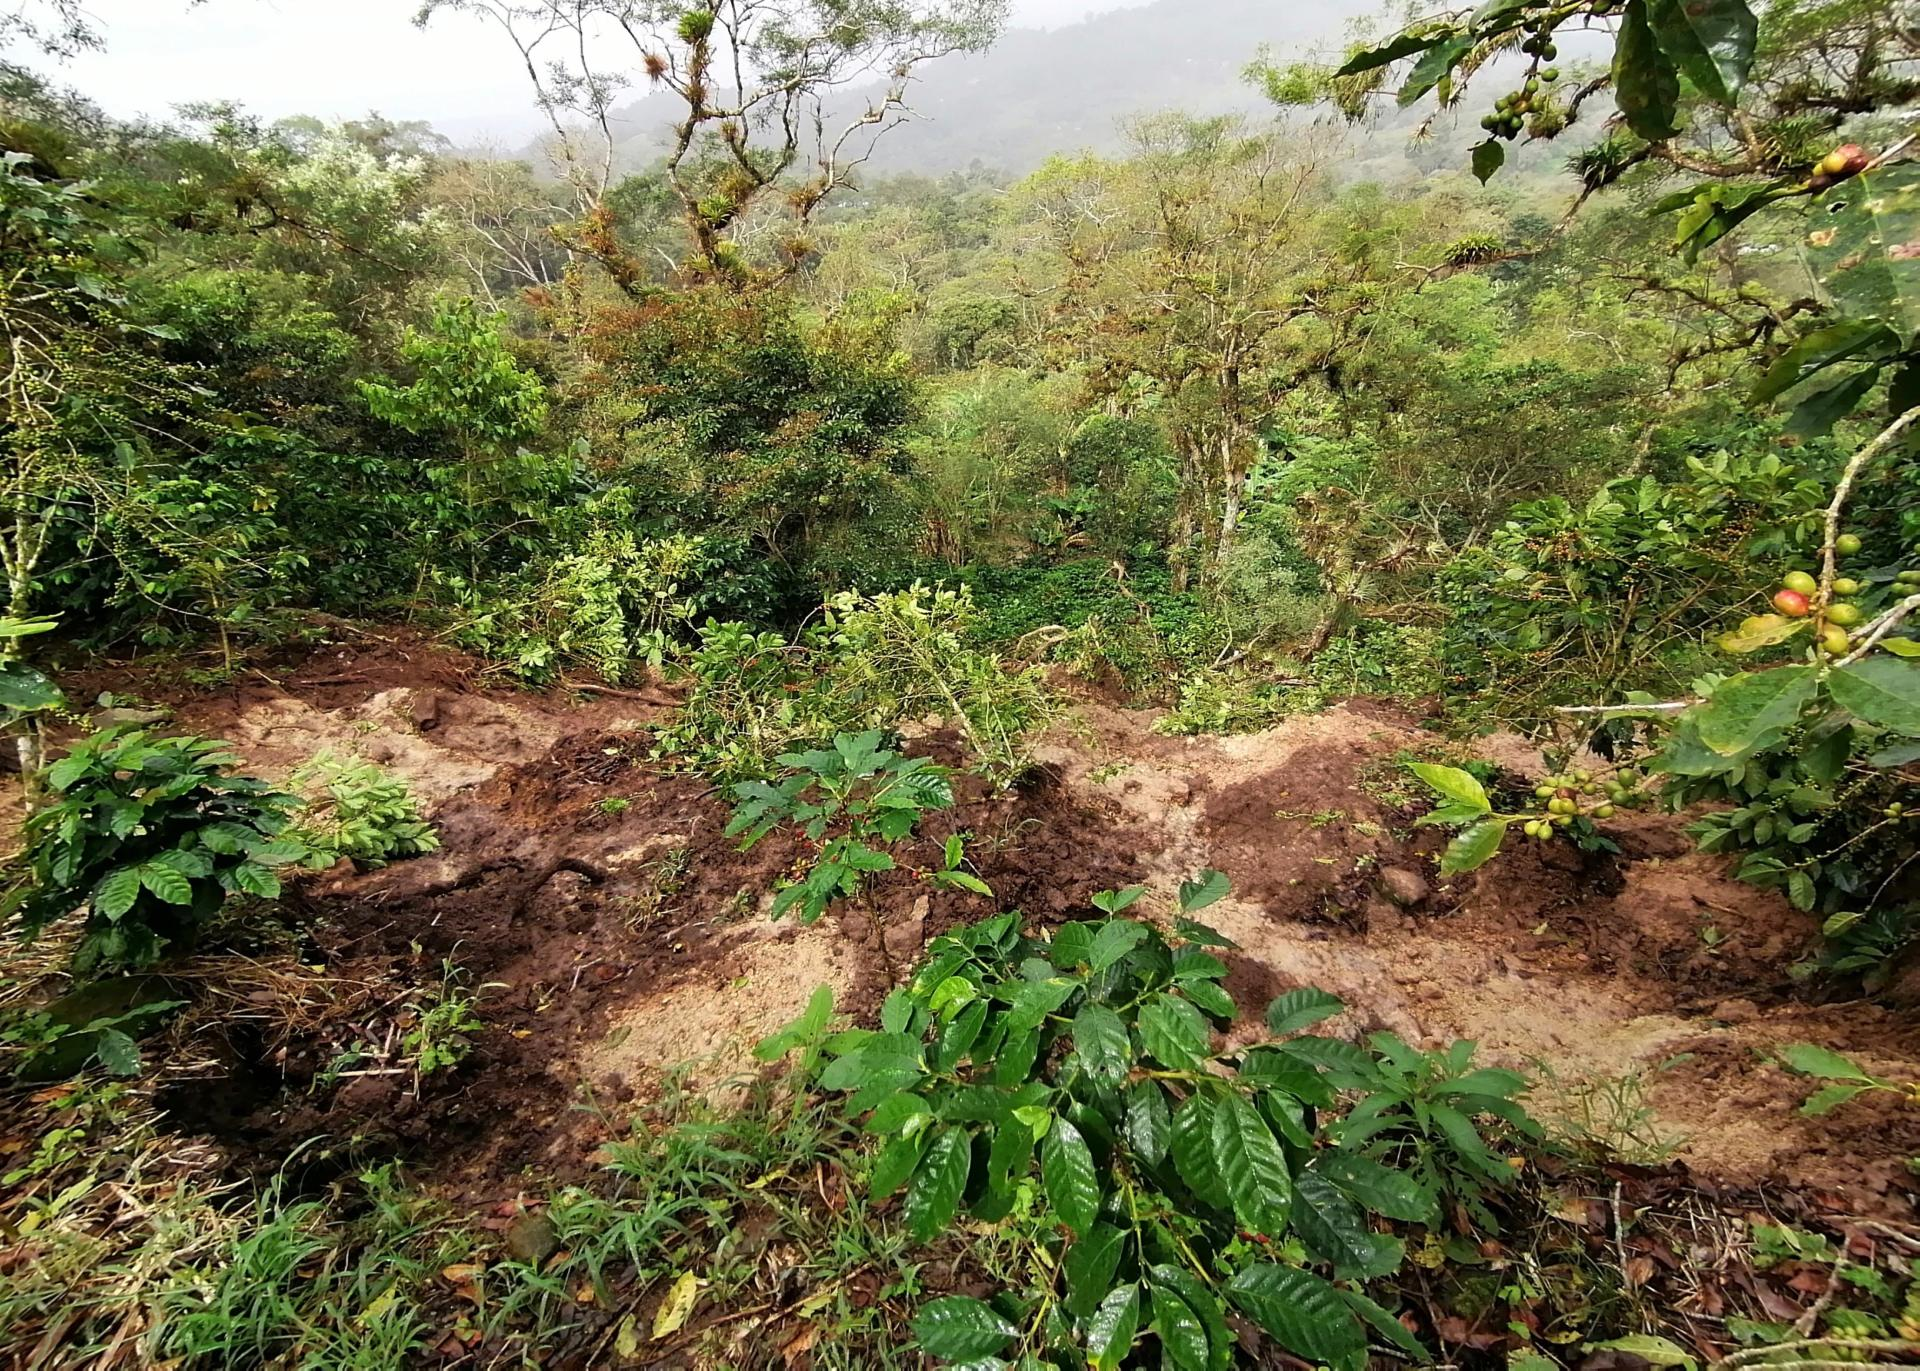 Effects of climate change can hinder sustainable coffee production und livelihoods